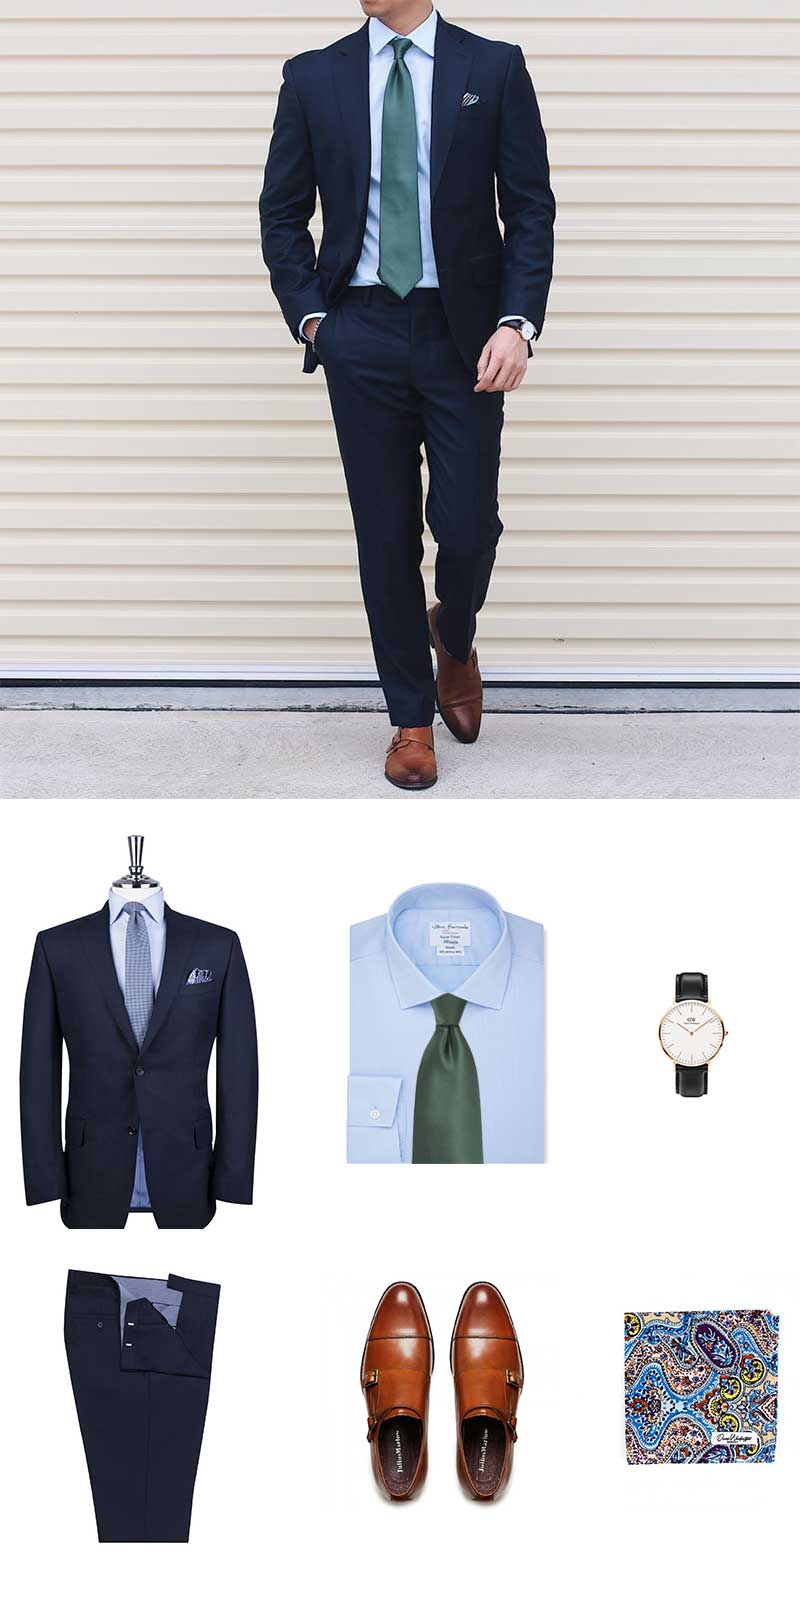 How To Wear A Pine Green Tie